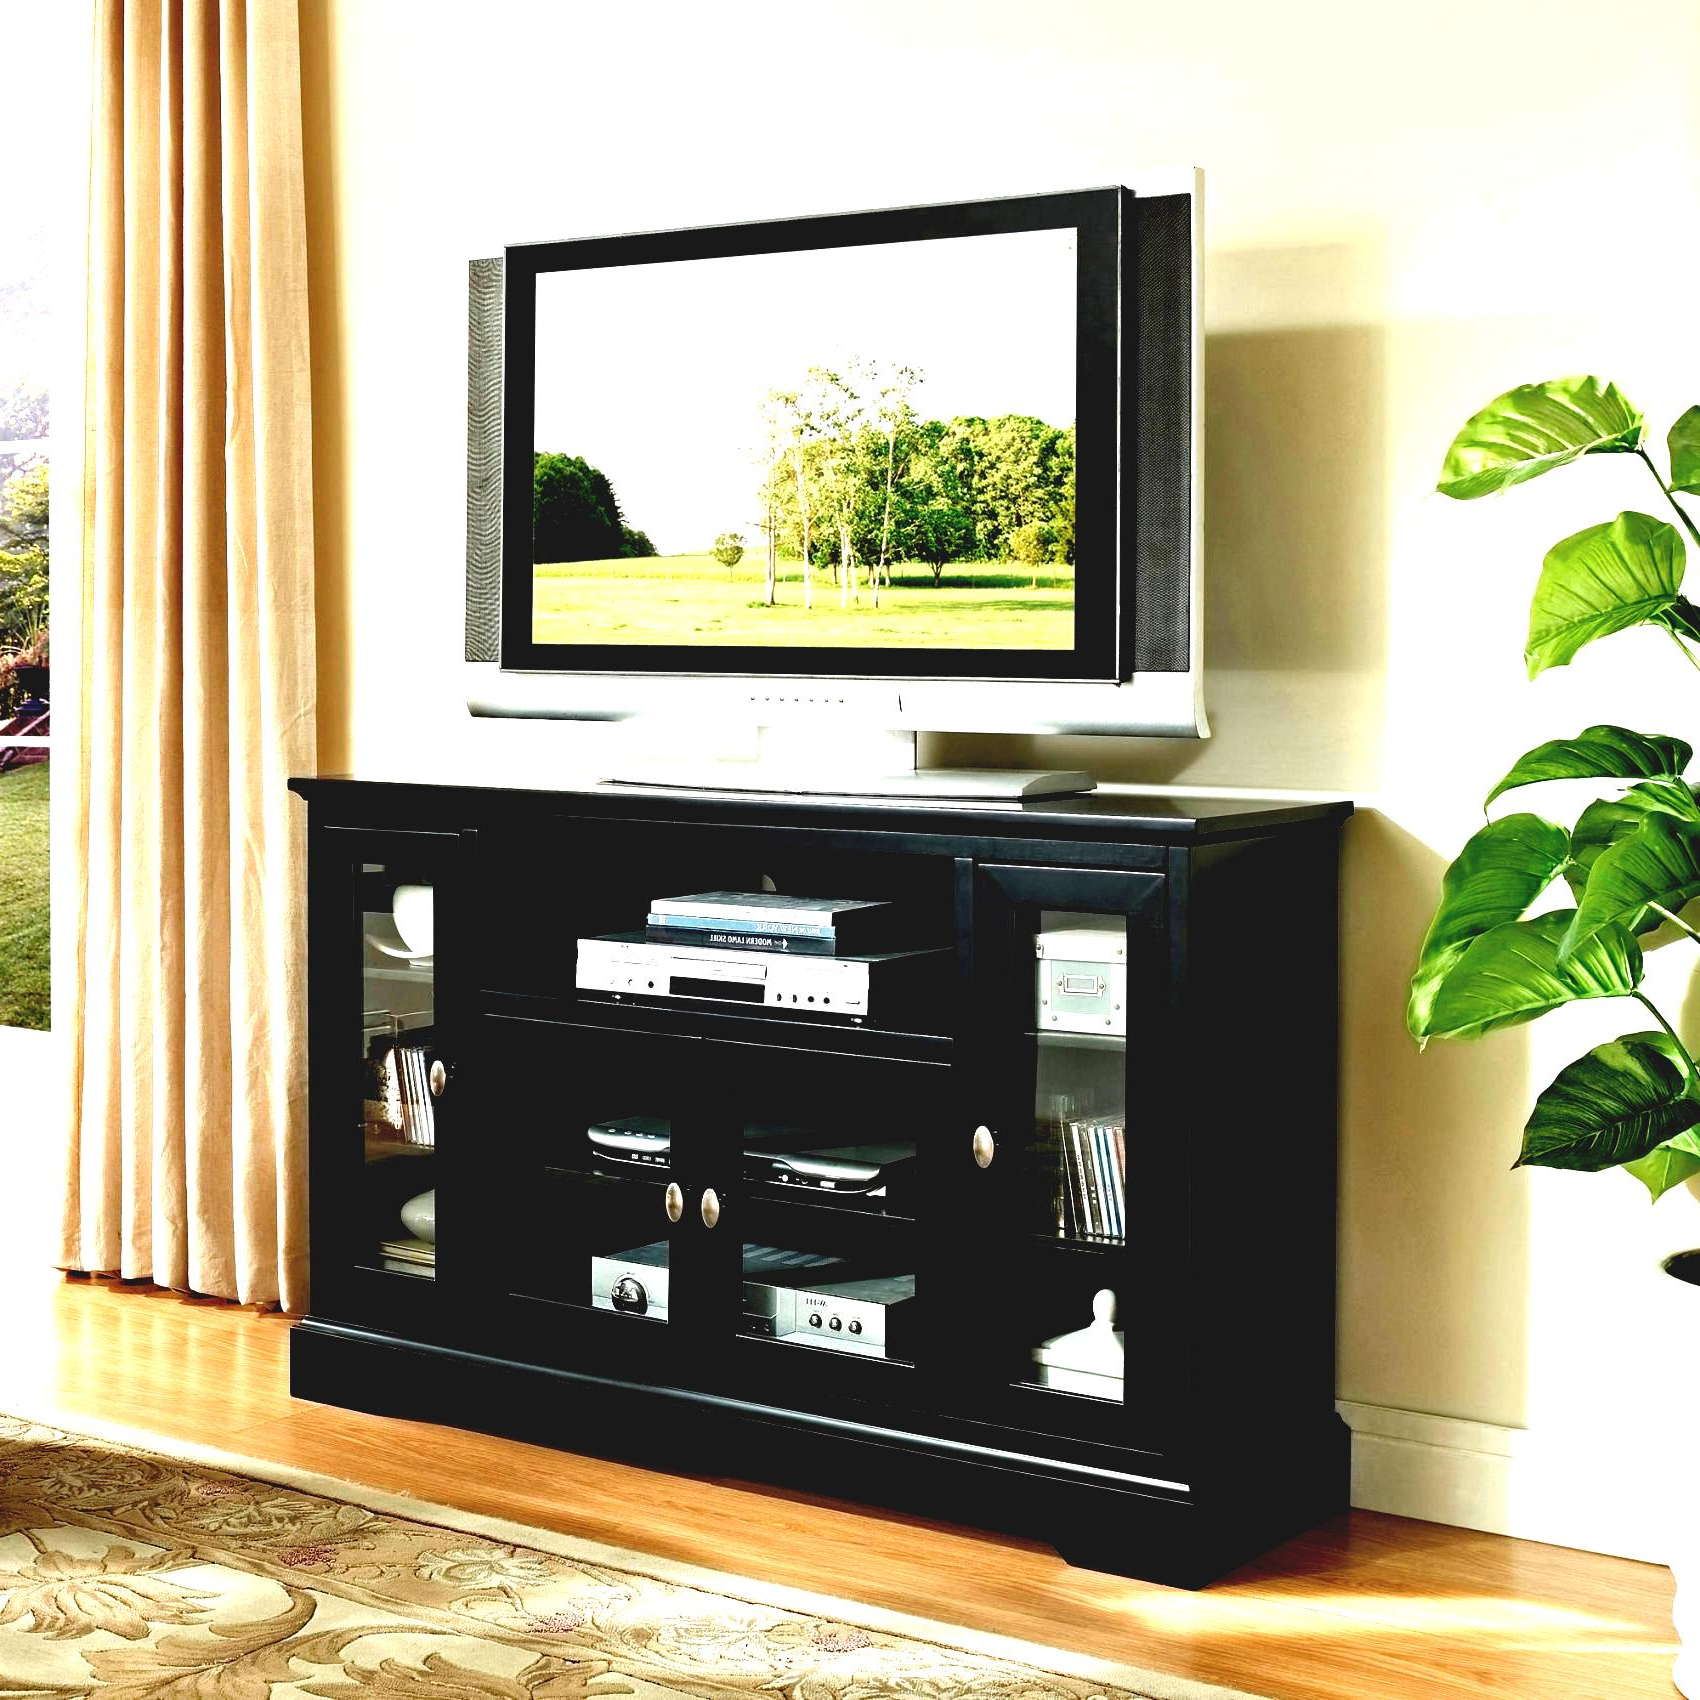 Tall Narrow Tv Stand For Bedroom 32 Inch Target Bookcase Extra Throughout 2017 Tall Narrow Tv Stands (View 16 of 20)